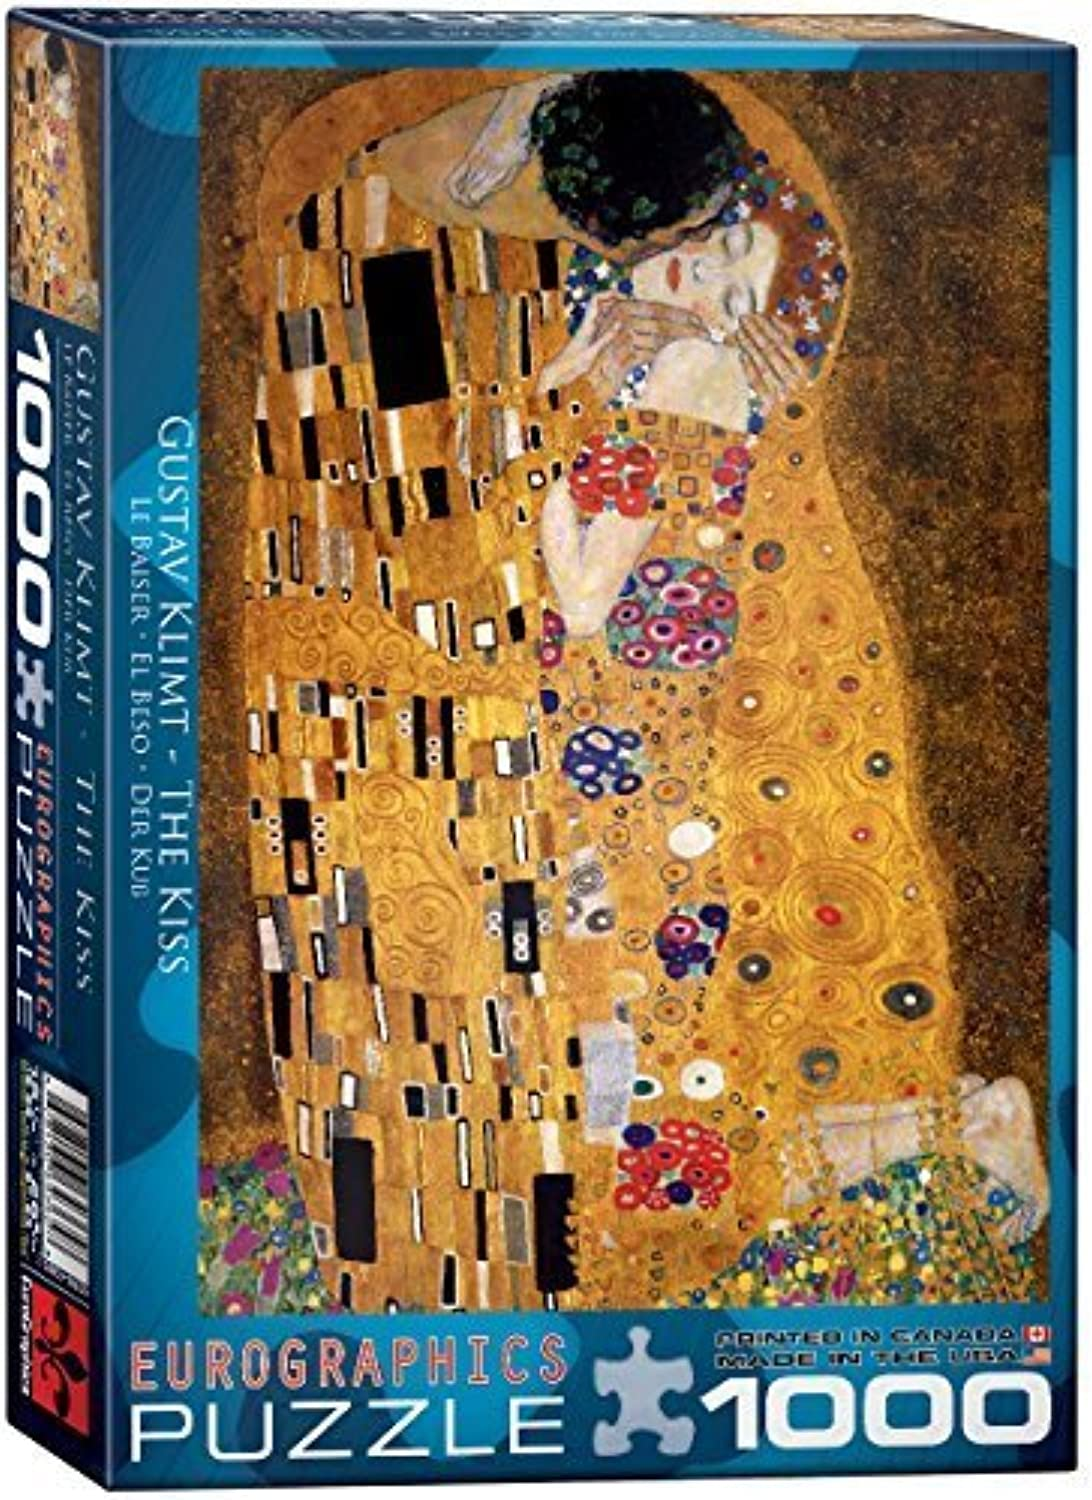 Eurographics the Kiss by Gustav Klimt Puzzle (1000 Pieces) by Eurographics